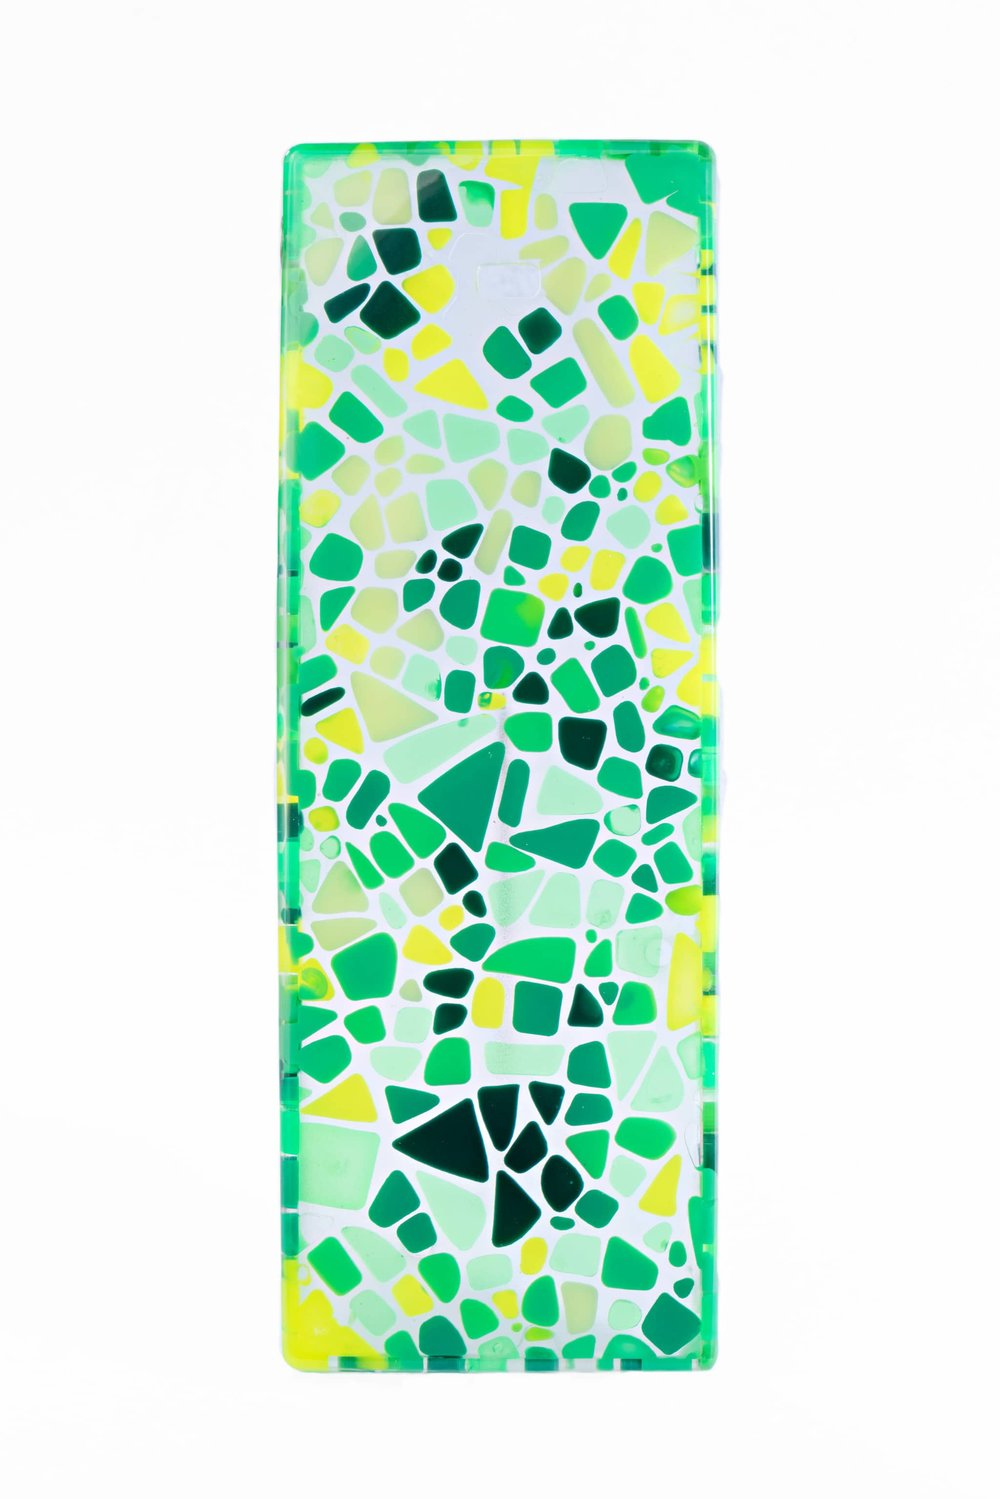 Mosaic green case 03.jpg